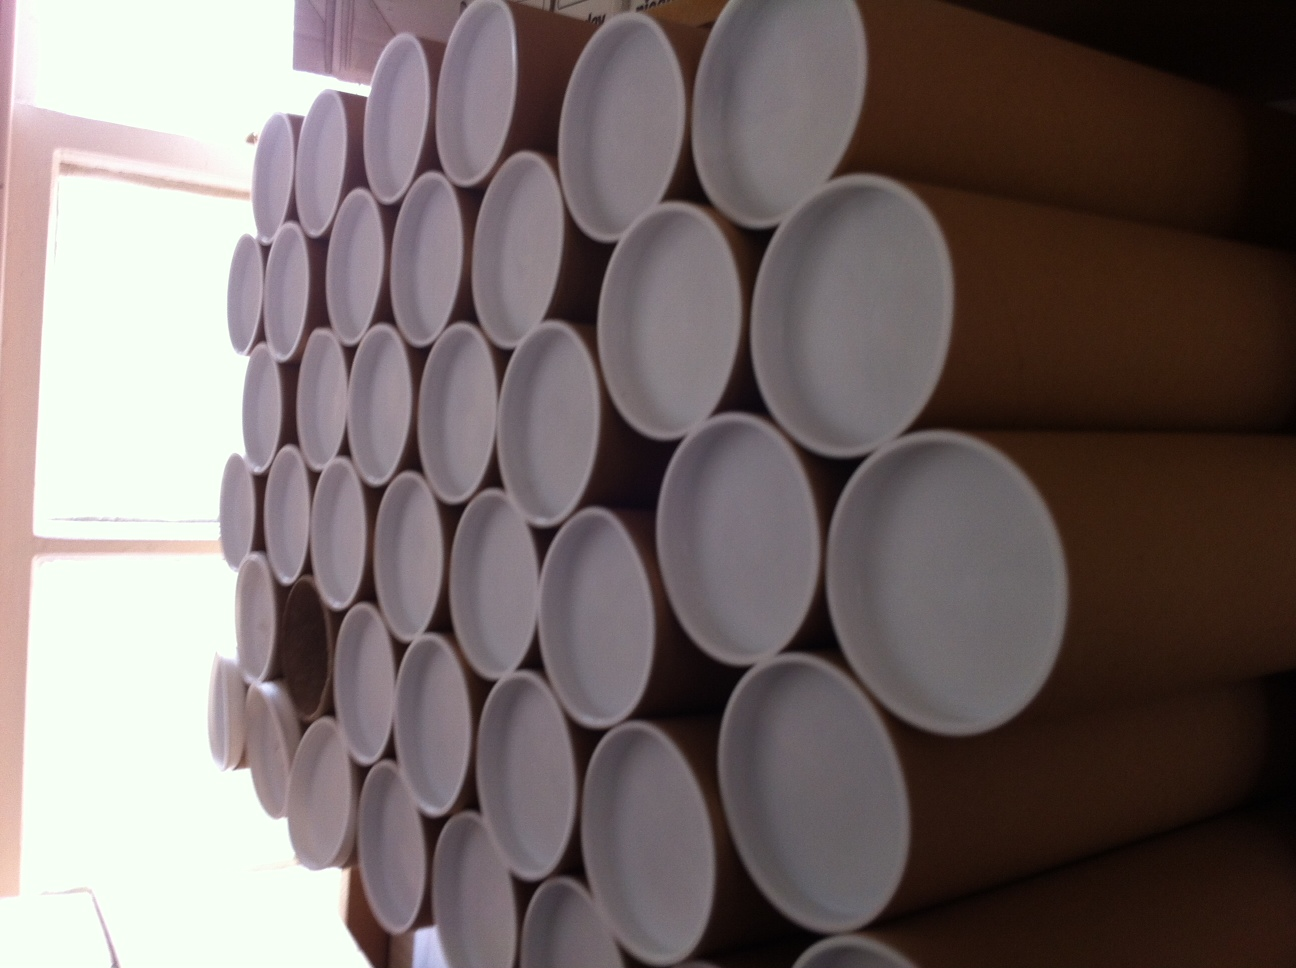 I accidentally ordered 60 mailing tubes instead of 10.